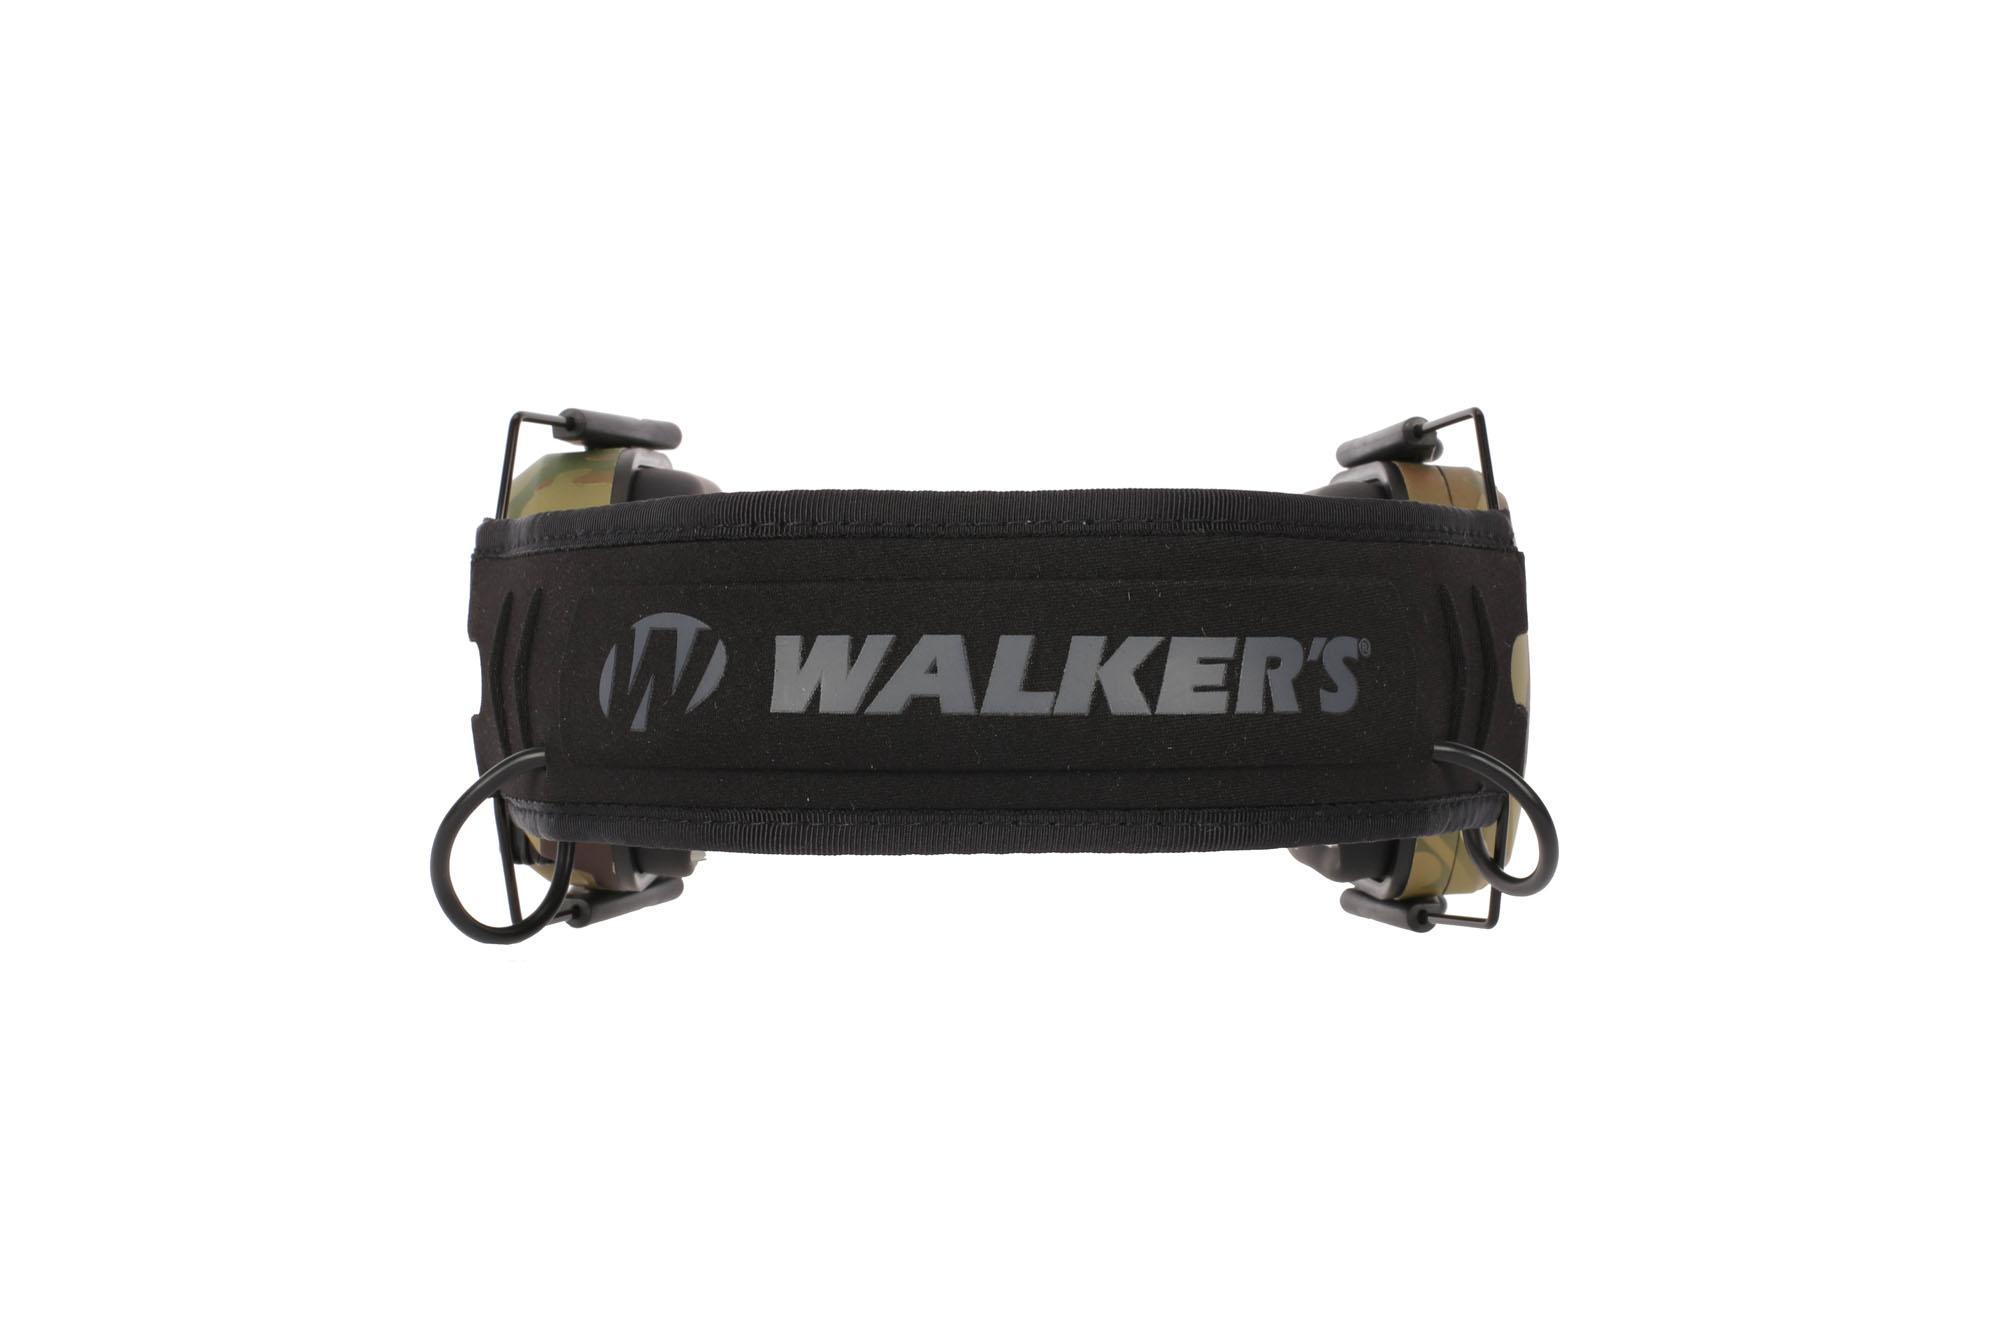 Walkers Razor Slim Electronic Hearing Muffs with comfortable head strap